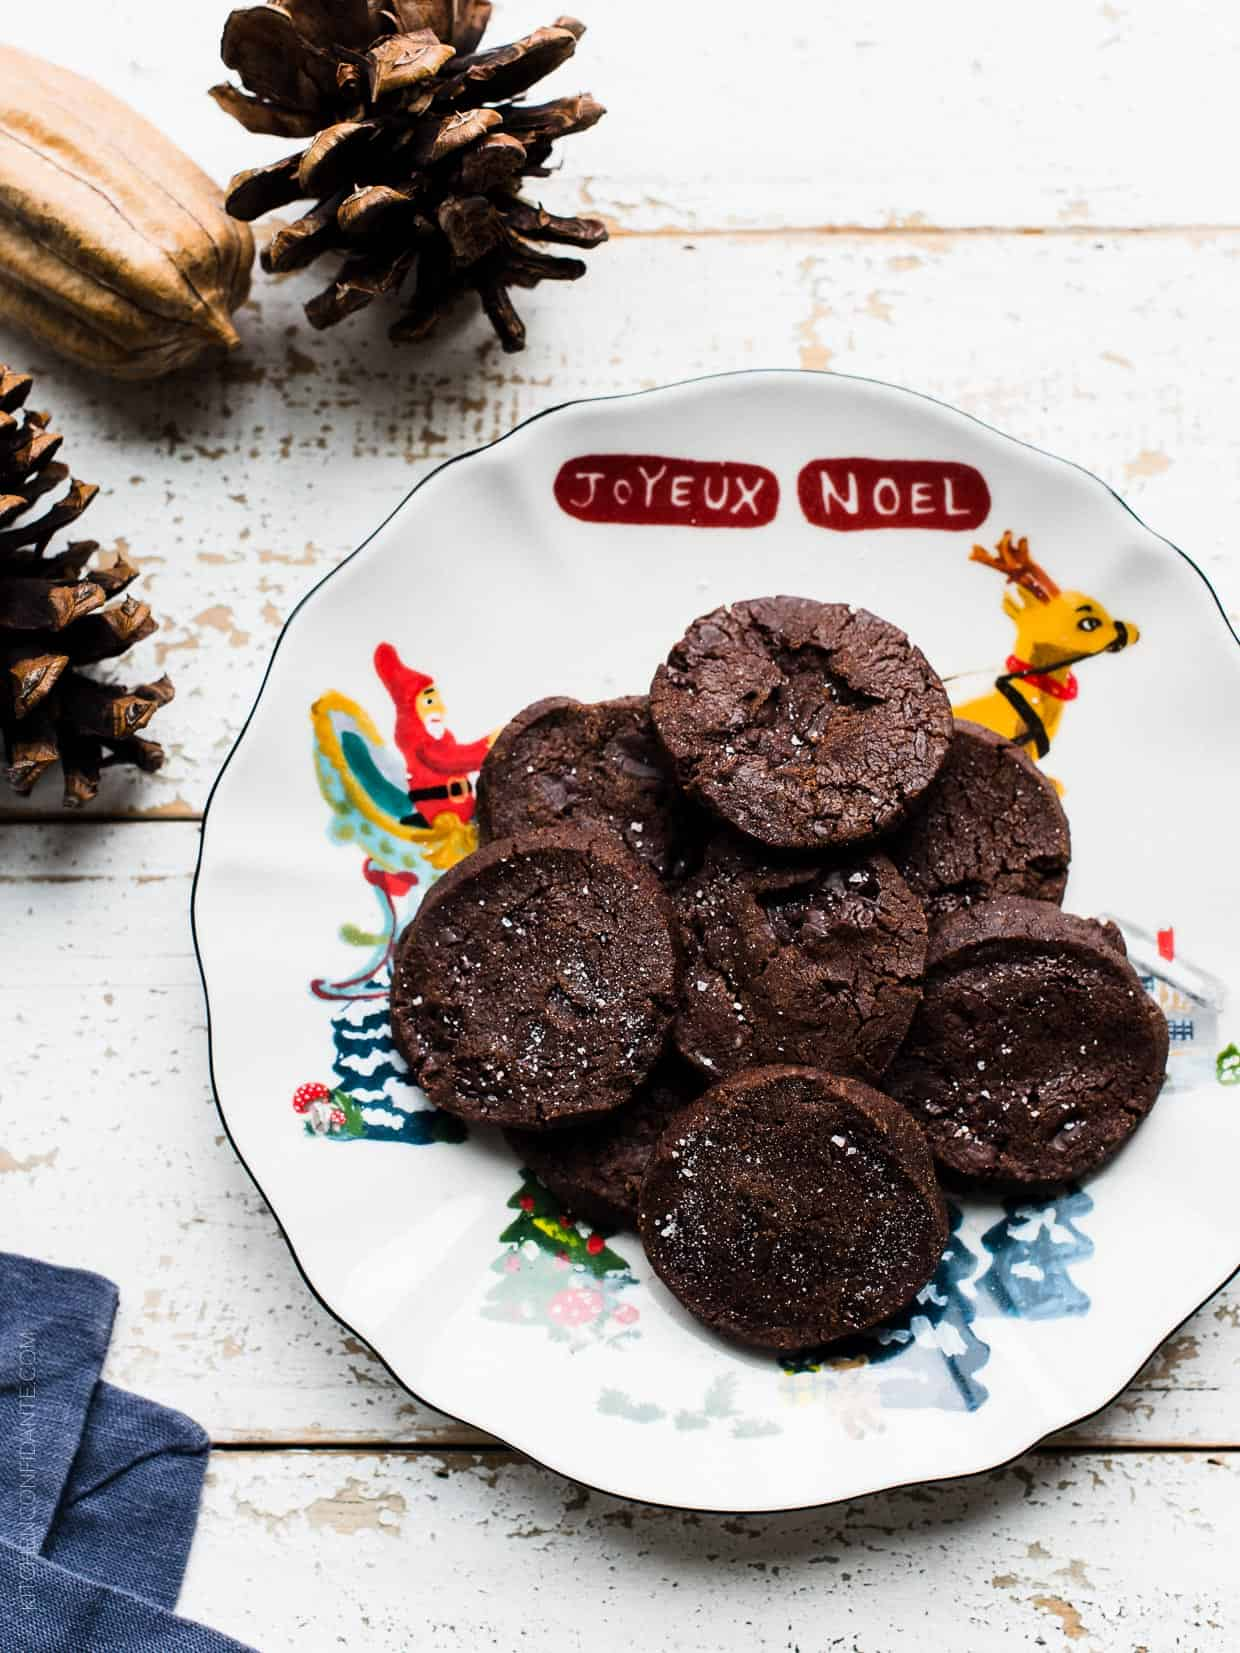 If there's a cookie that could live up to it's name, Dorie Greenspan's World Peace Cookies might be it, especially for salted dark chocolate cookie lovers.